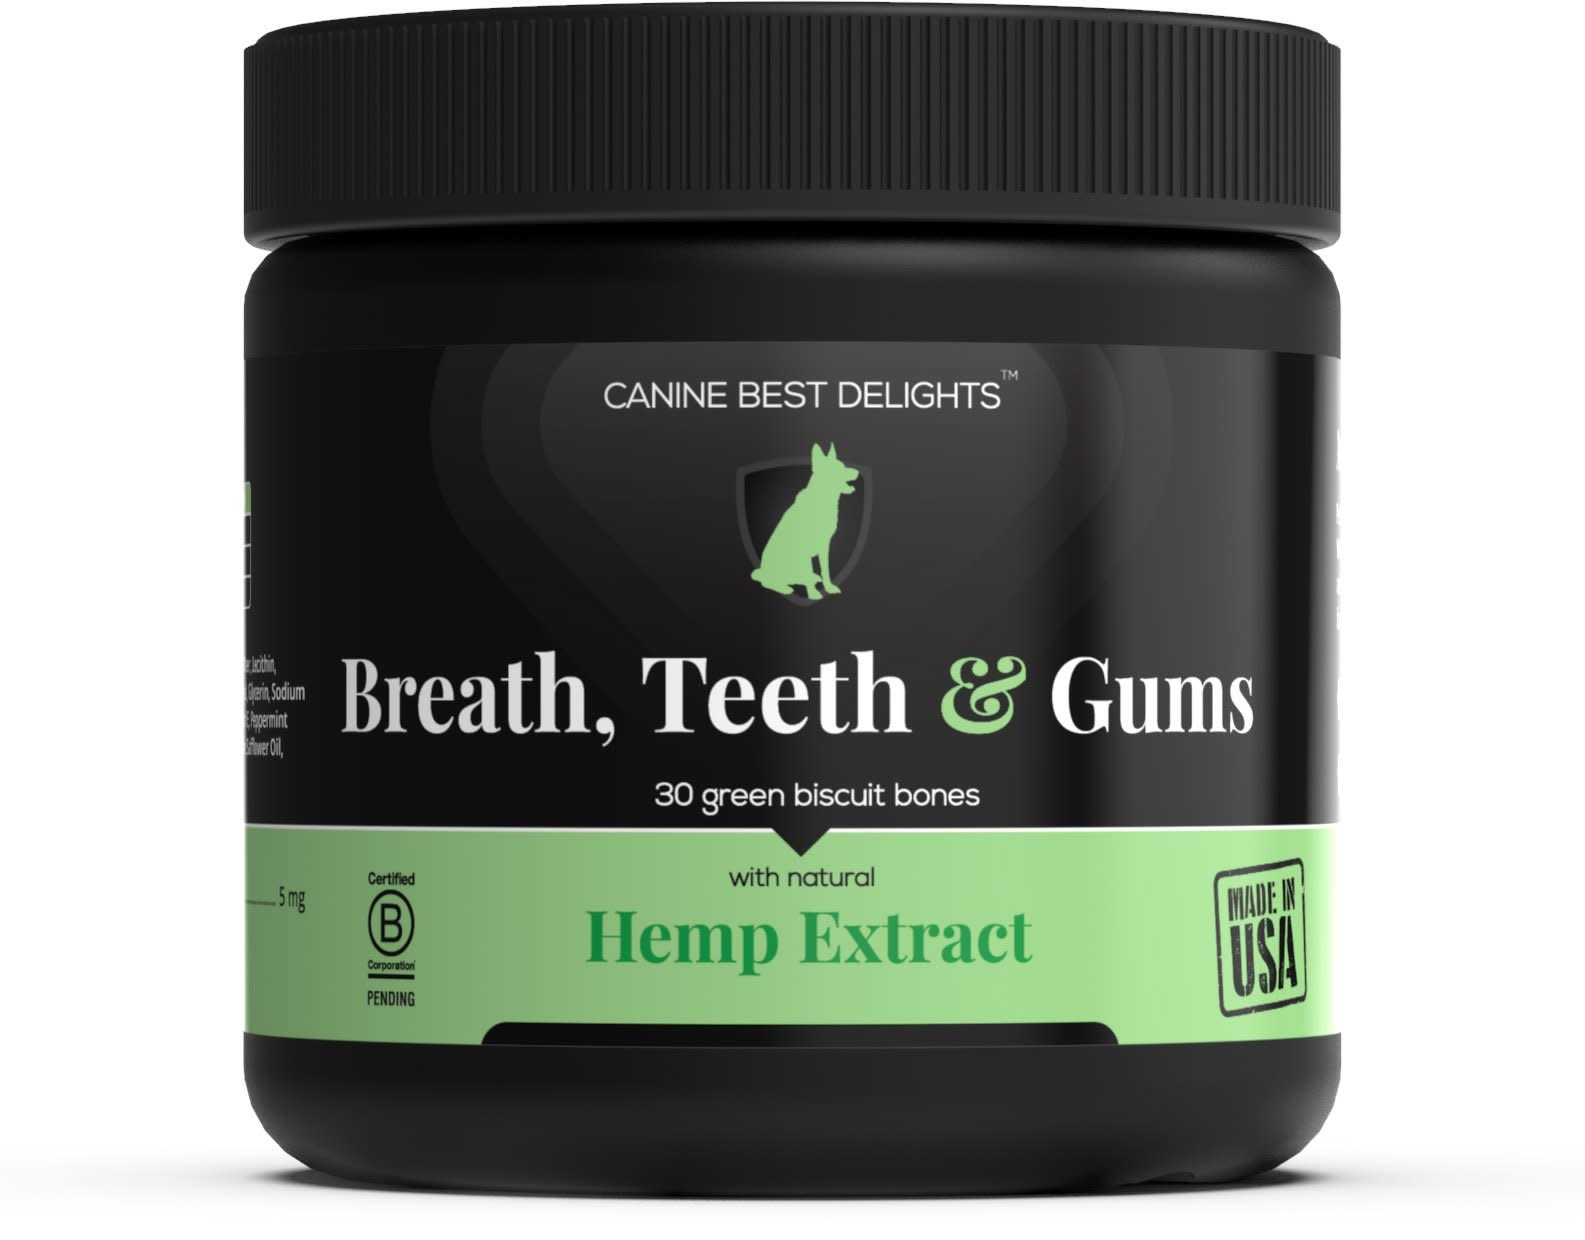 Canine Best Delights Breath, Teeth & Gums